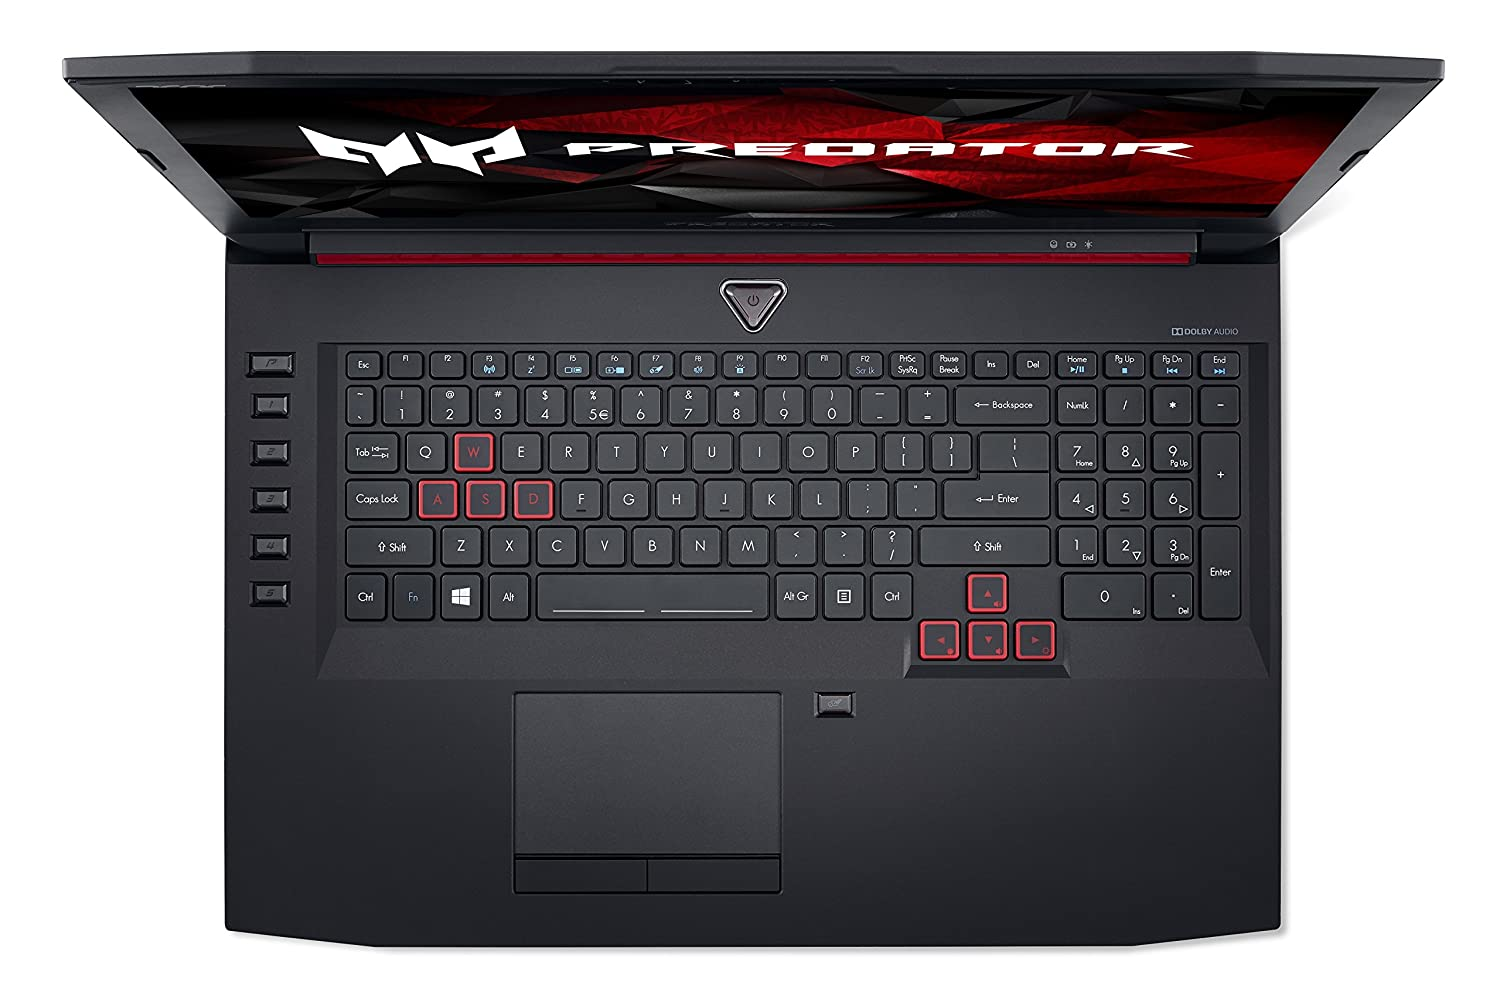 Acer Predator 17 G9-791-79HR Skylake Gaming-Notebook